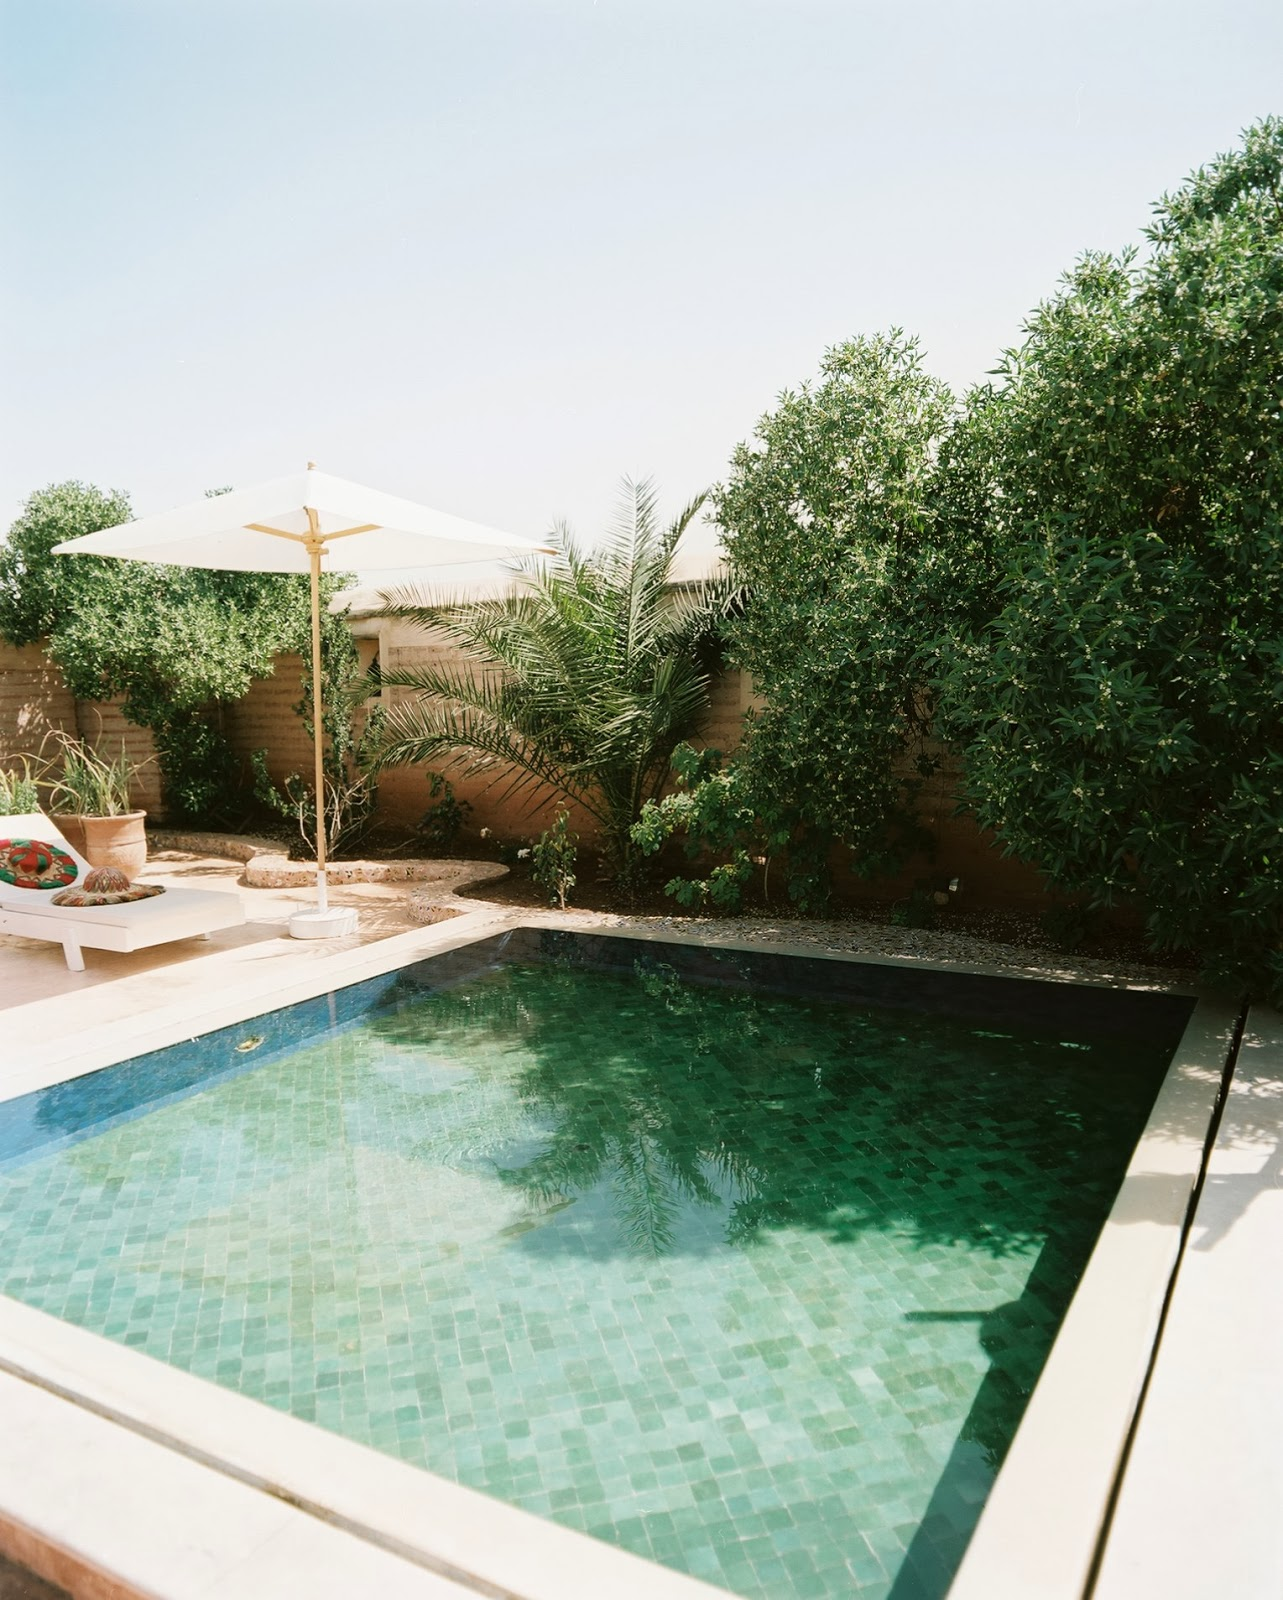 Cline+Morocco+Pool+Shot.jpg